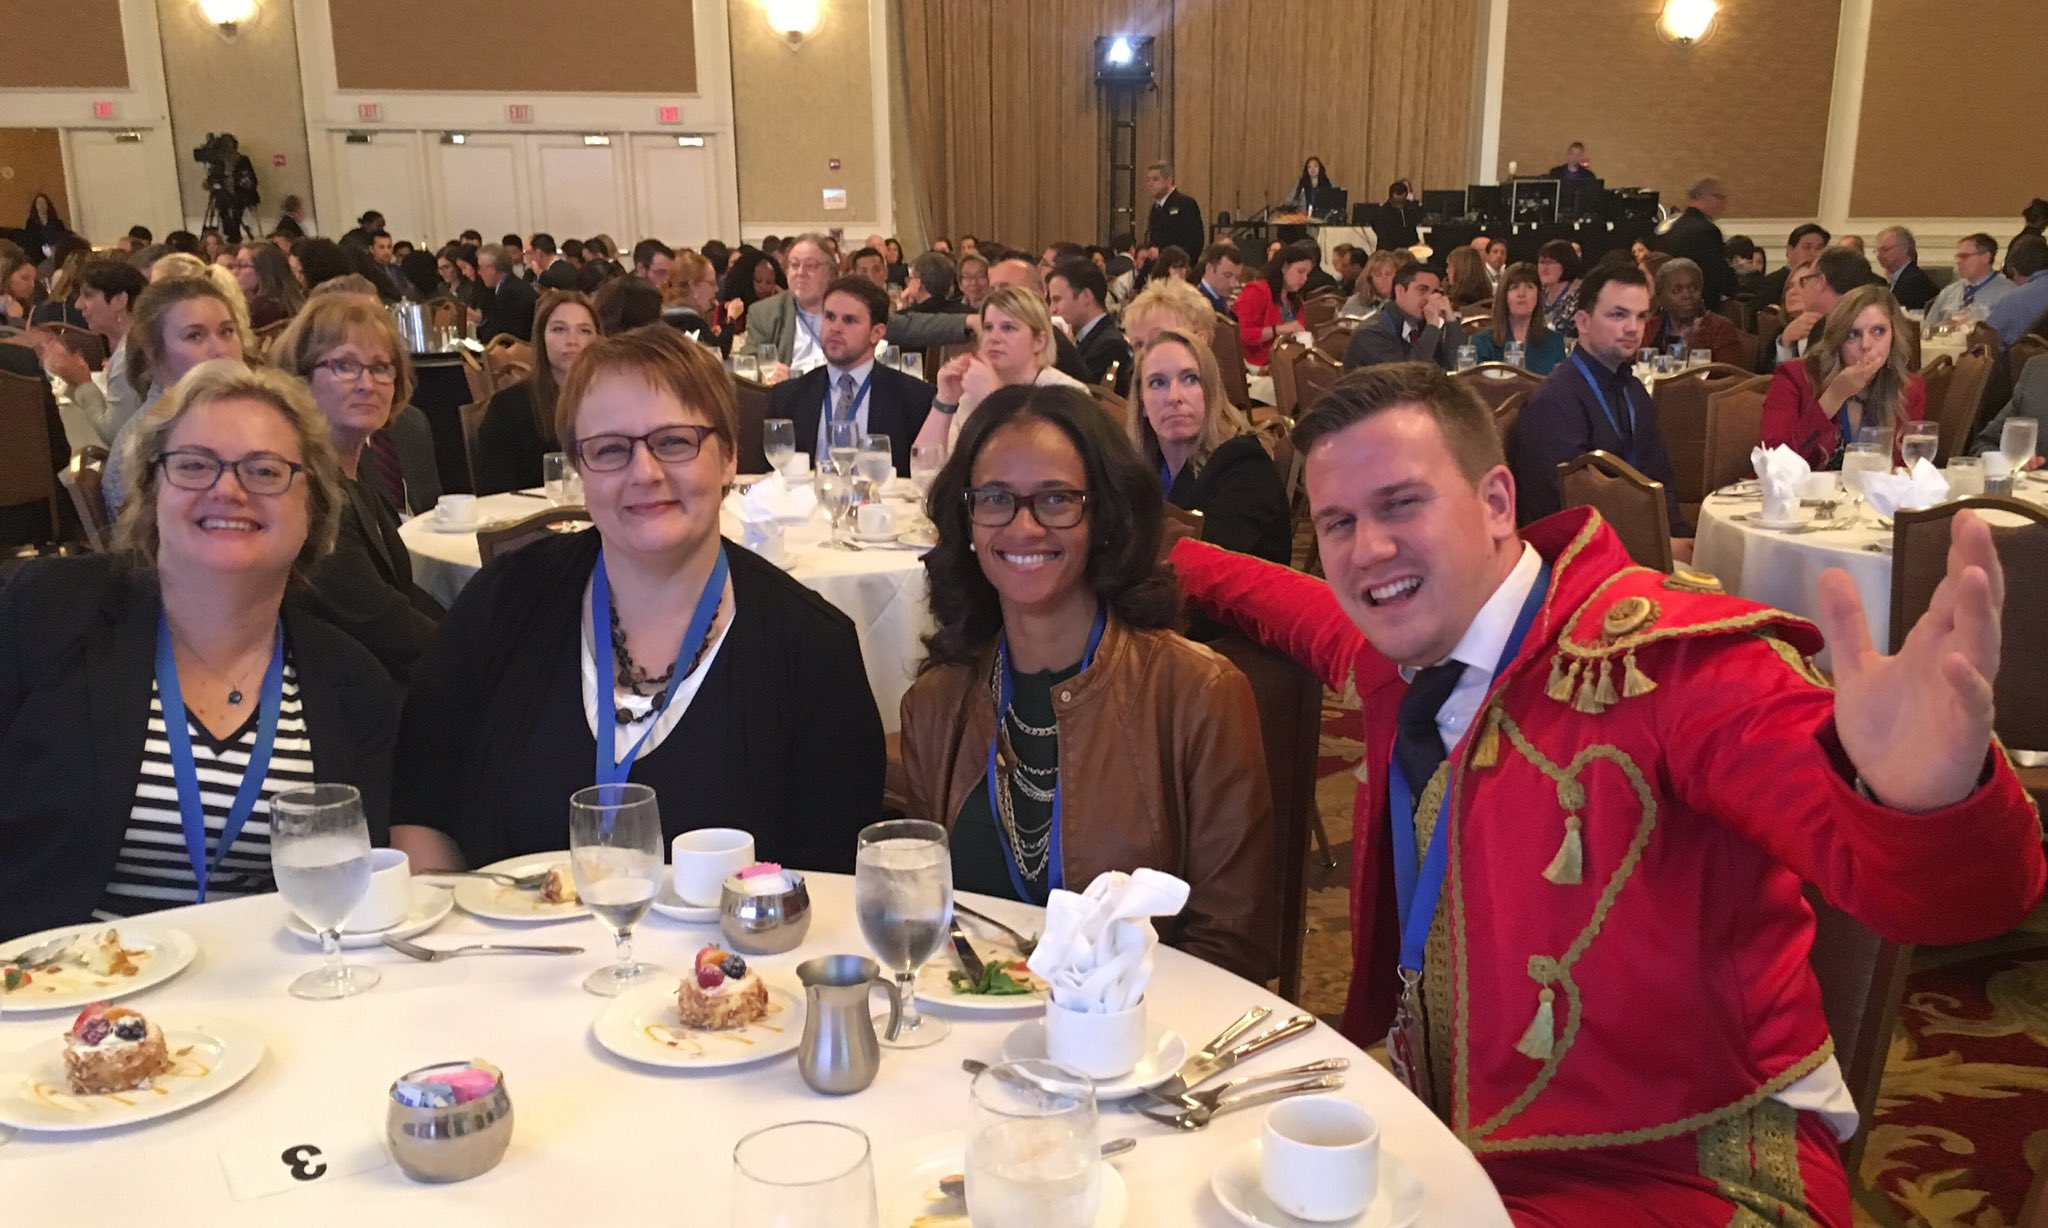 Lunch with the Finns and the Spanish Bullfighter...int'l education at its best! #IIESummit2016 #GenerationStudyAbroad https://t.co/57UNLW8OEN